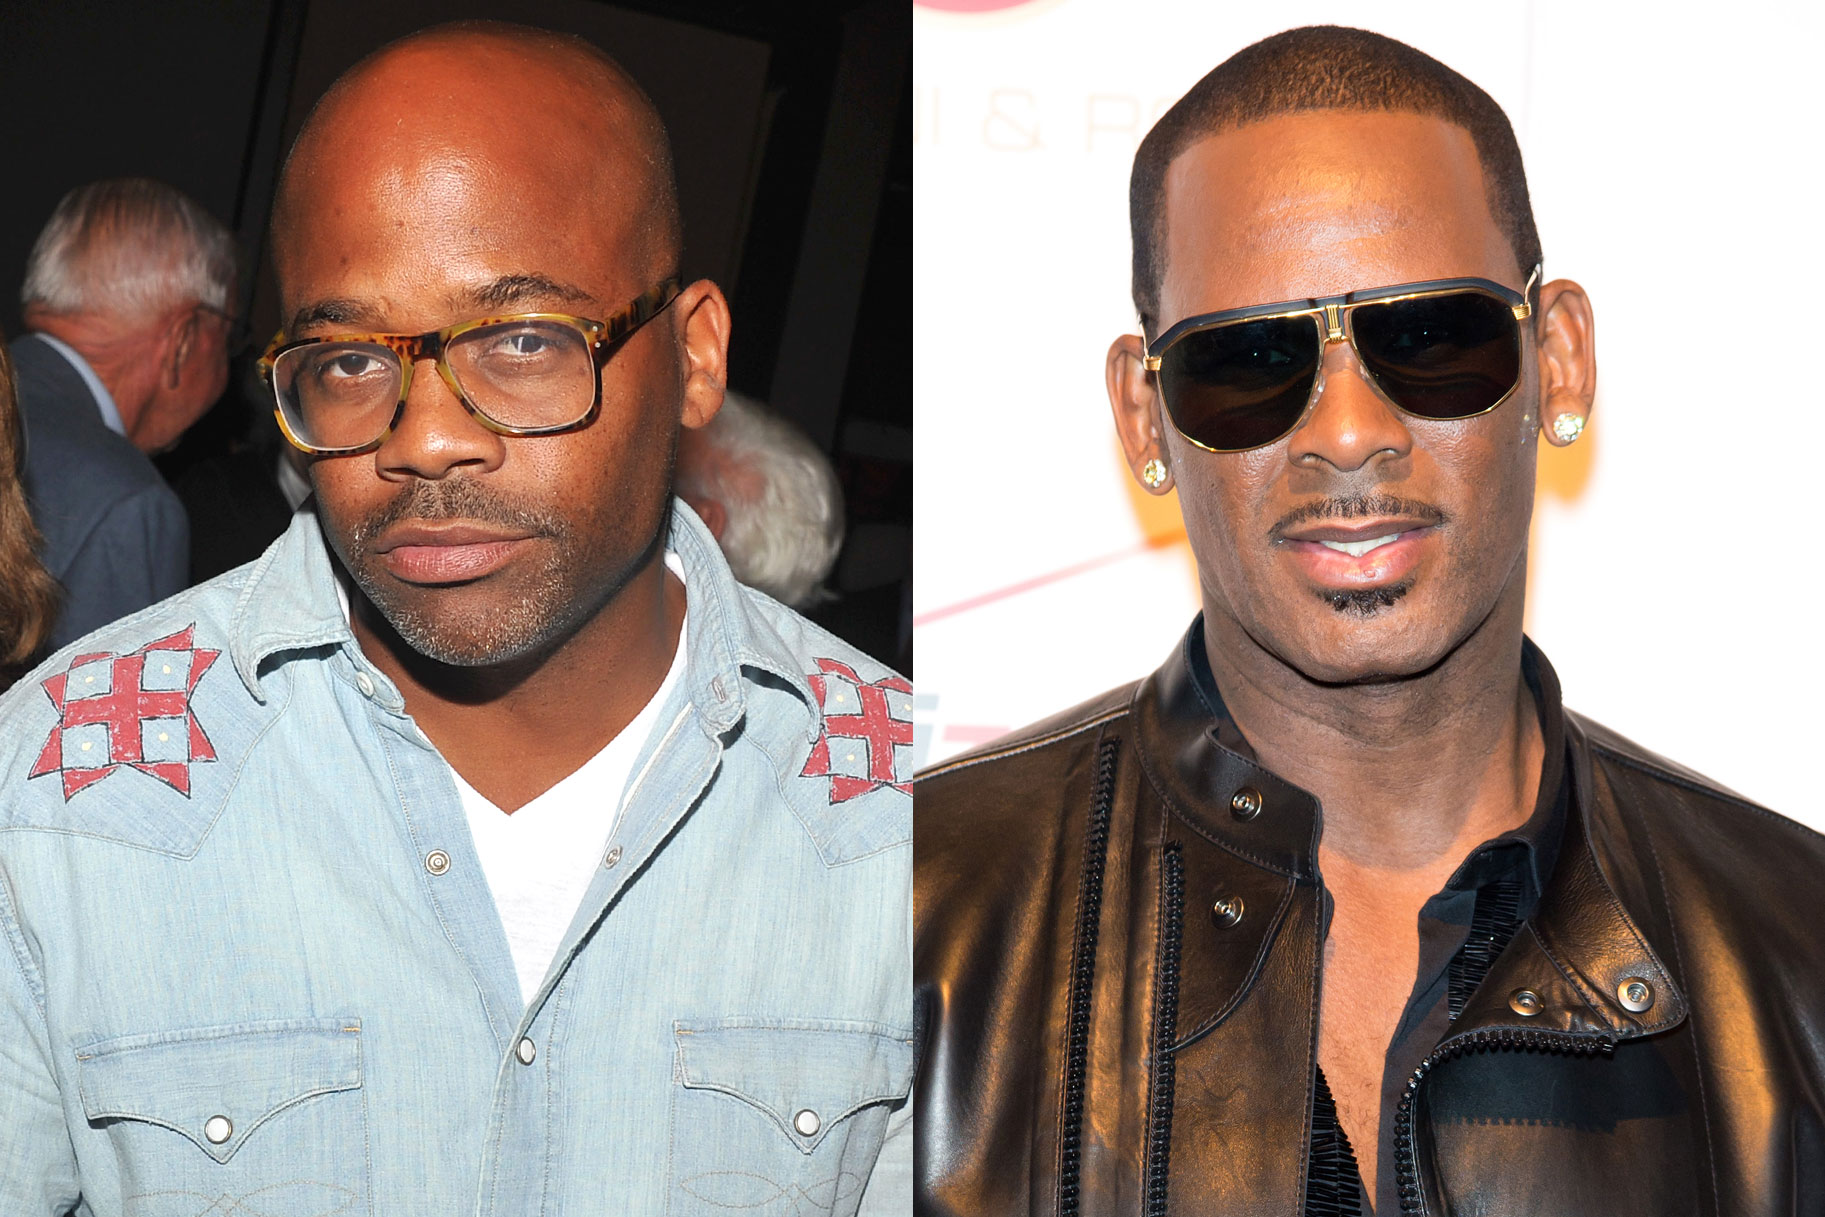 'He Set Me Up': R. Kelly's Brother Says Singer Secretly Taped Him Having Threesome